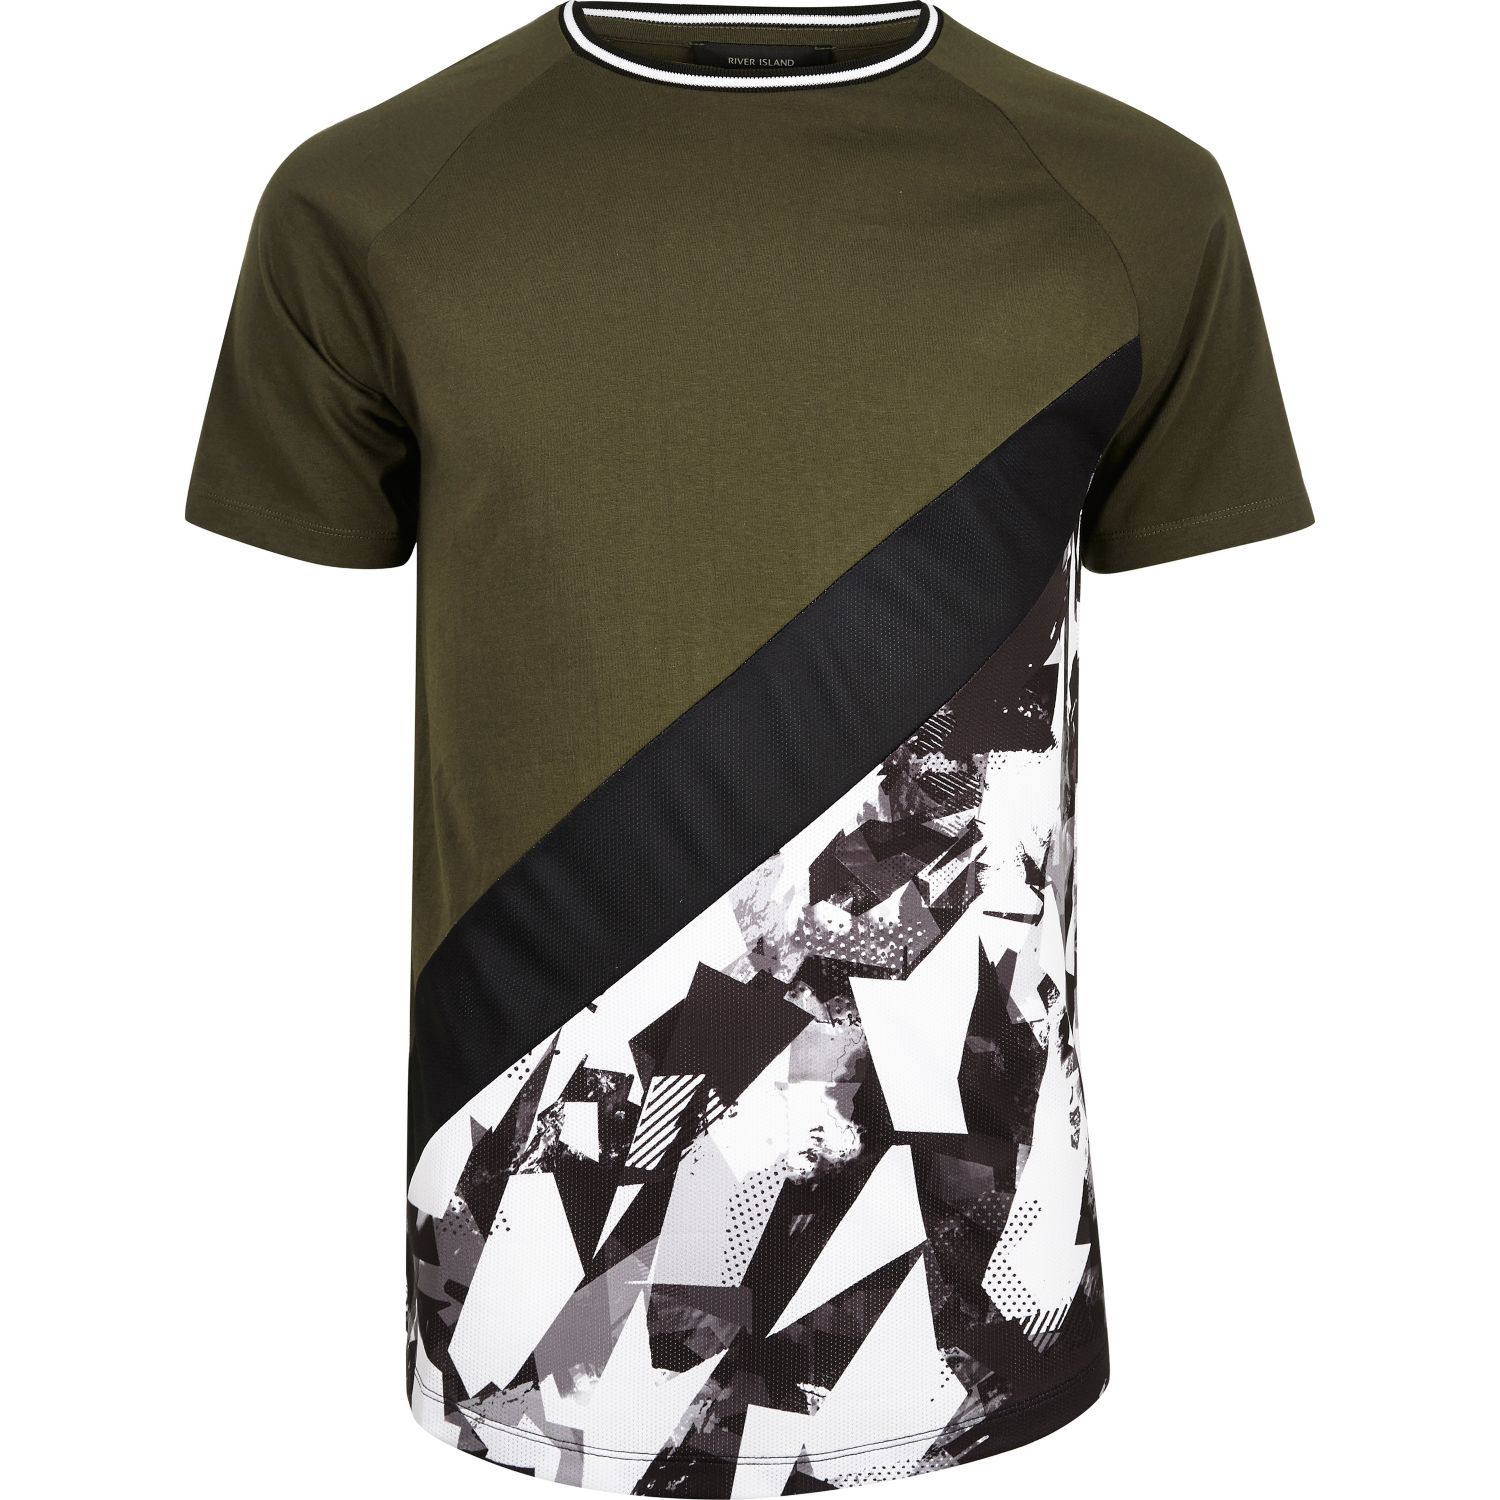 6dab224392 River Island Khaki colour block camo T-shirt